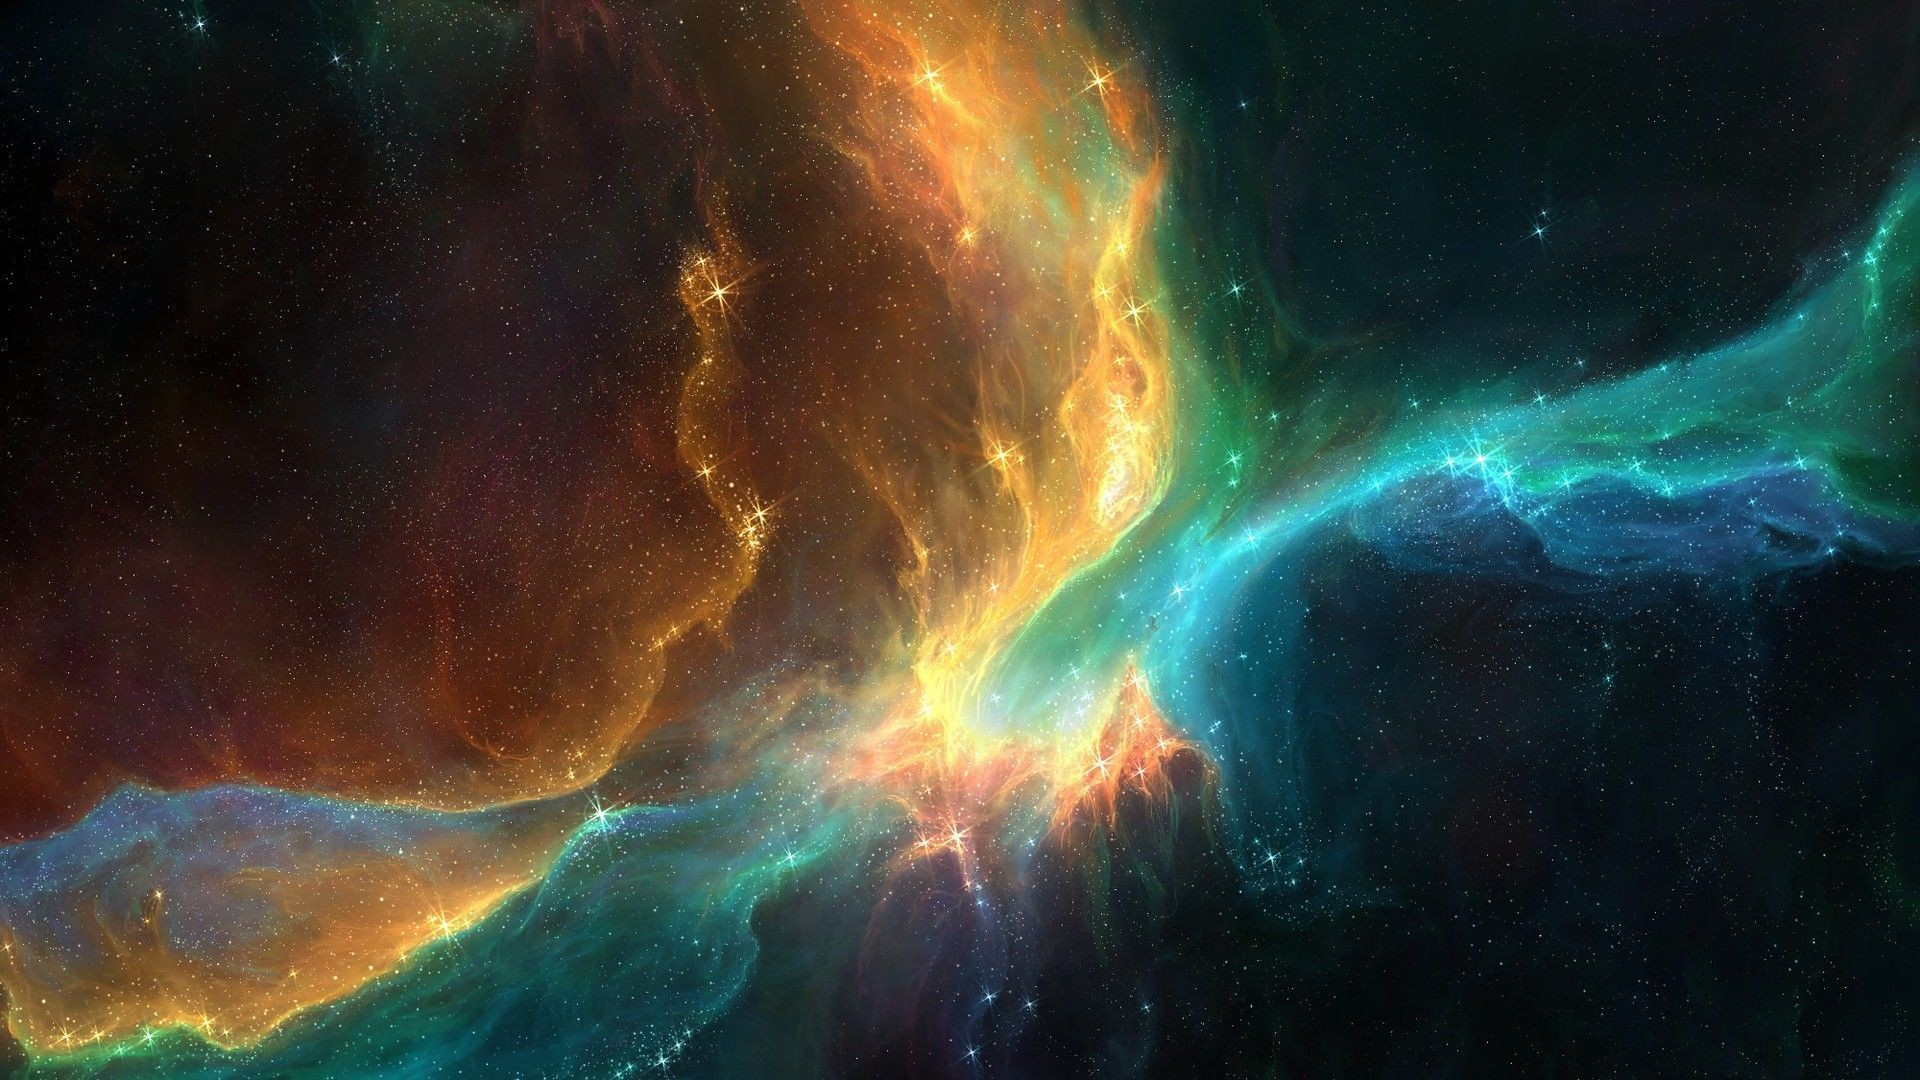 Wonderful Wallpaper High Quality Nebula - 241778  You Should Have_396676.jpg